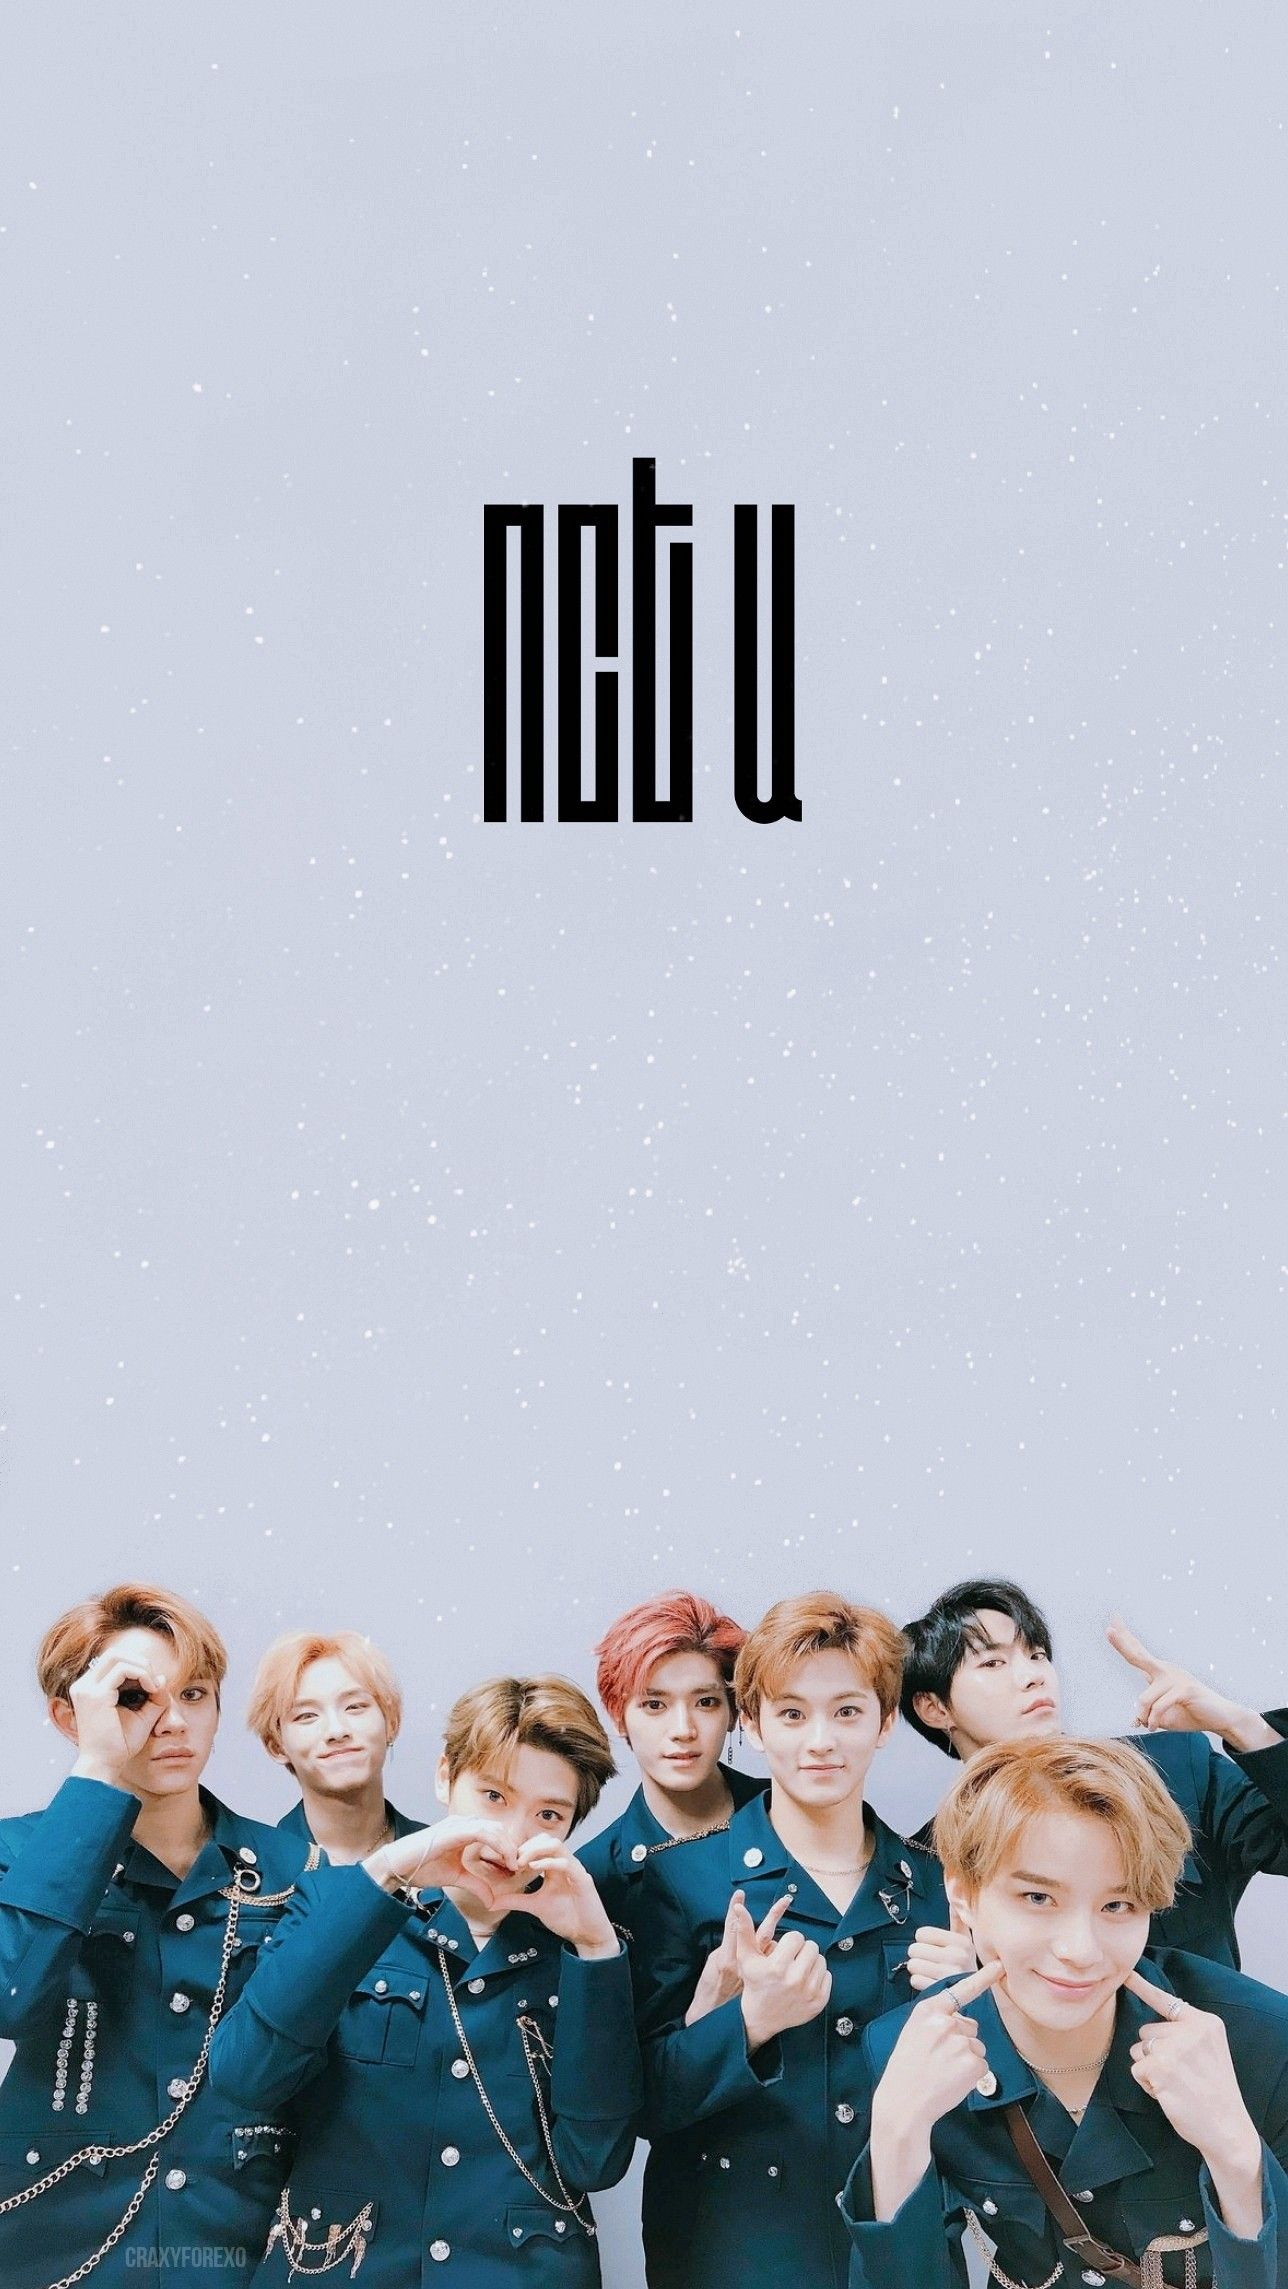 Nctu Nct Nct Wallpaper Nct Wallpaper Nct Wallpapers In 2019